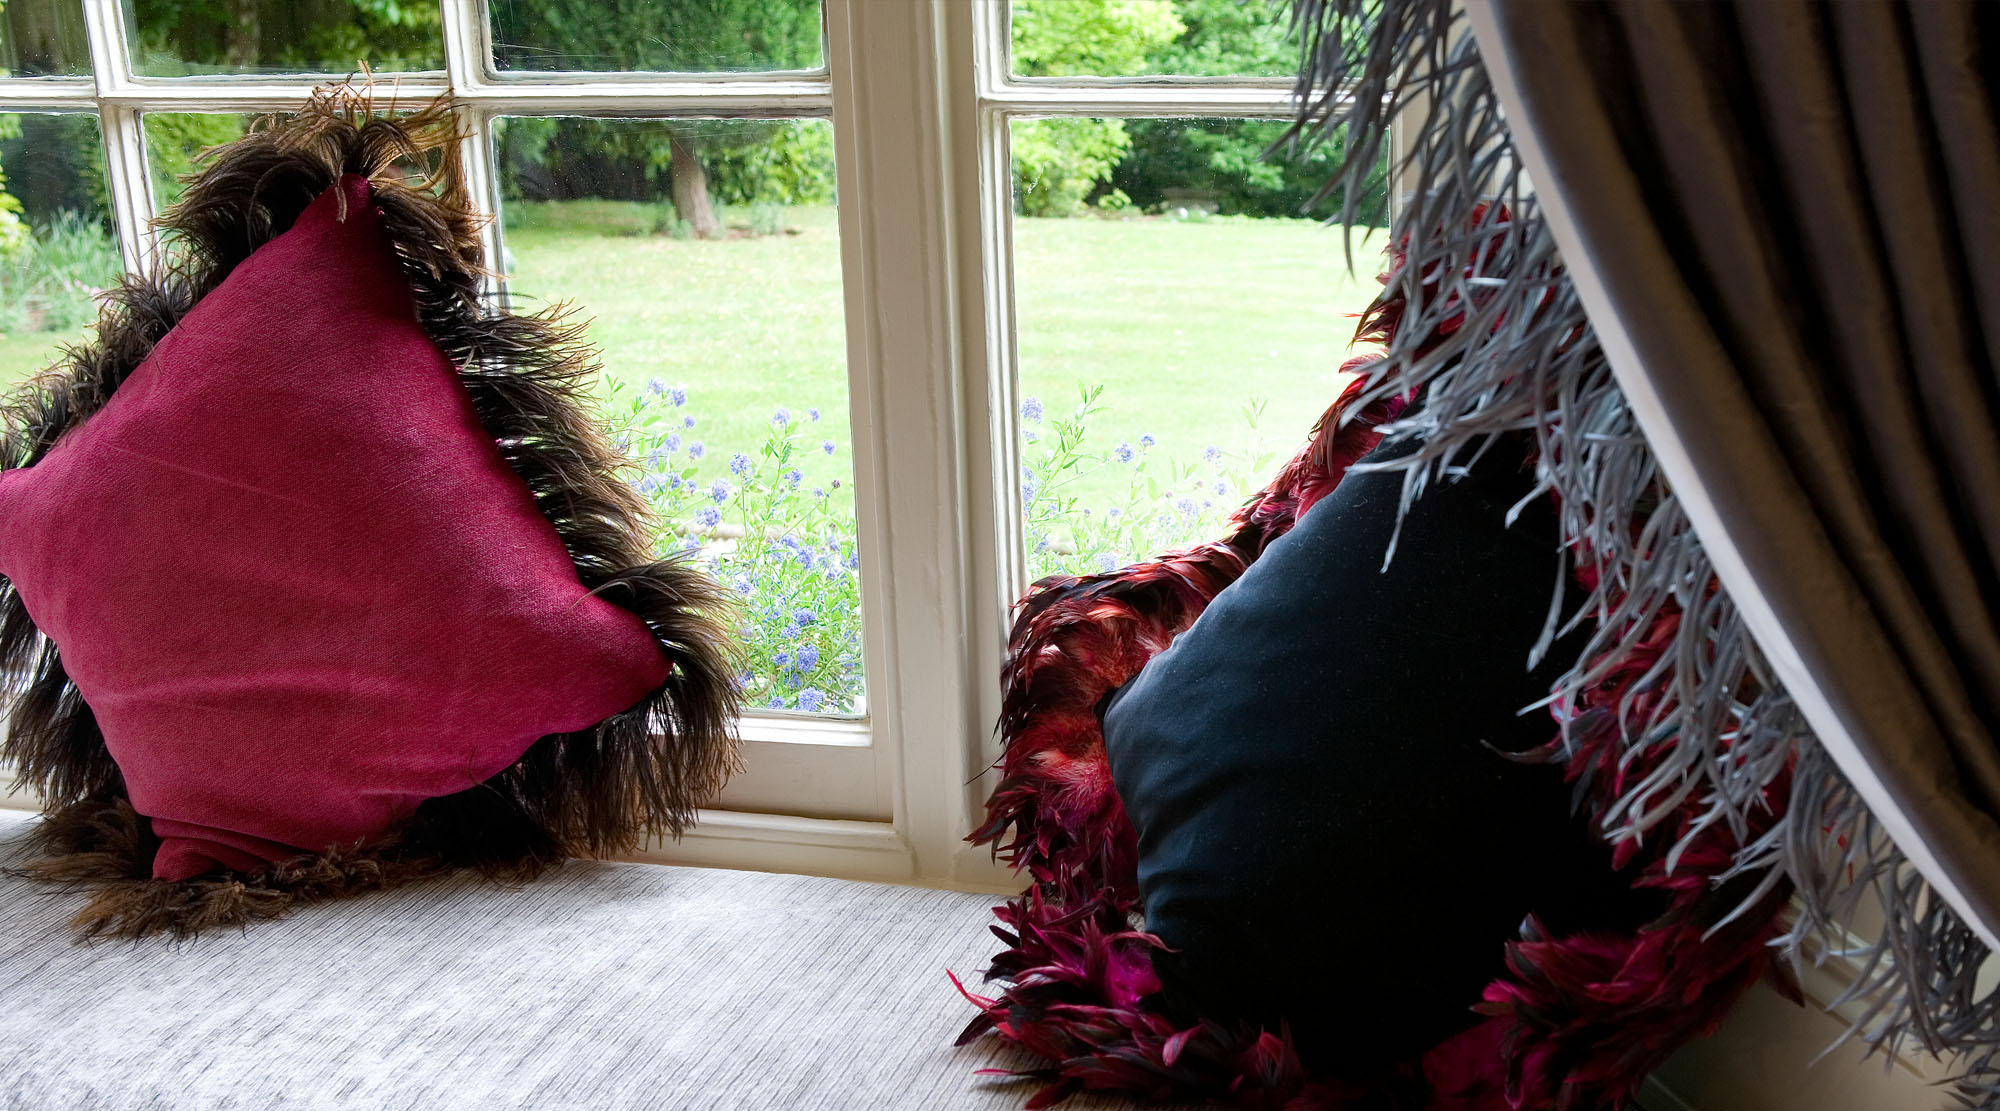 Luxury cushions in window-sill trimmed with faux fur and feathers.